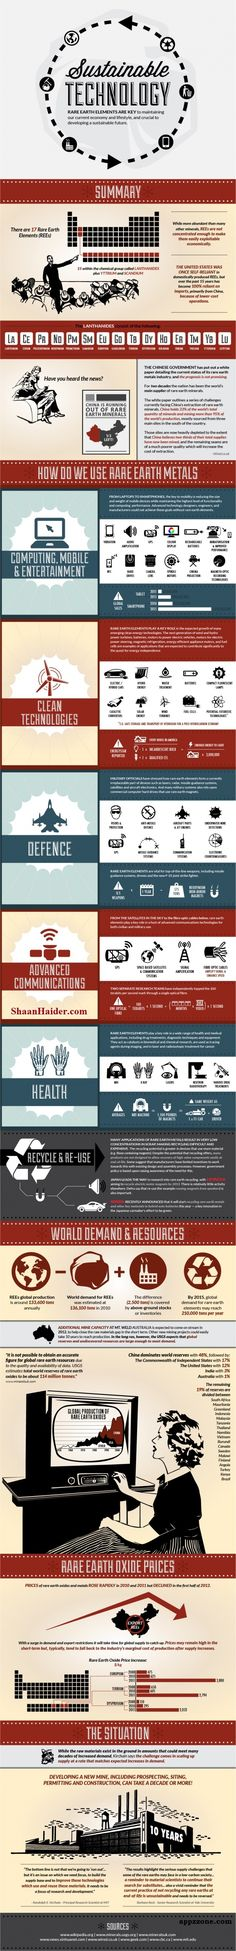 Sustainable technology #infographic